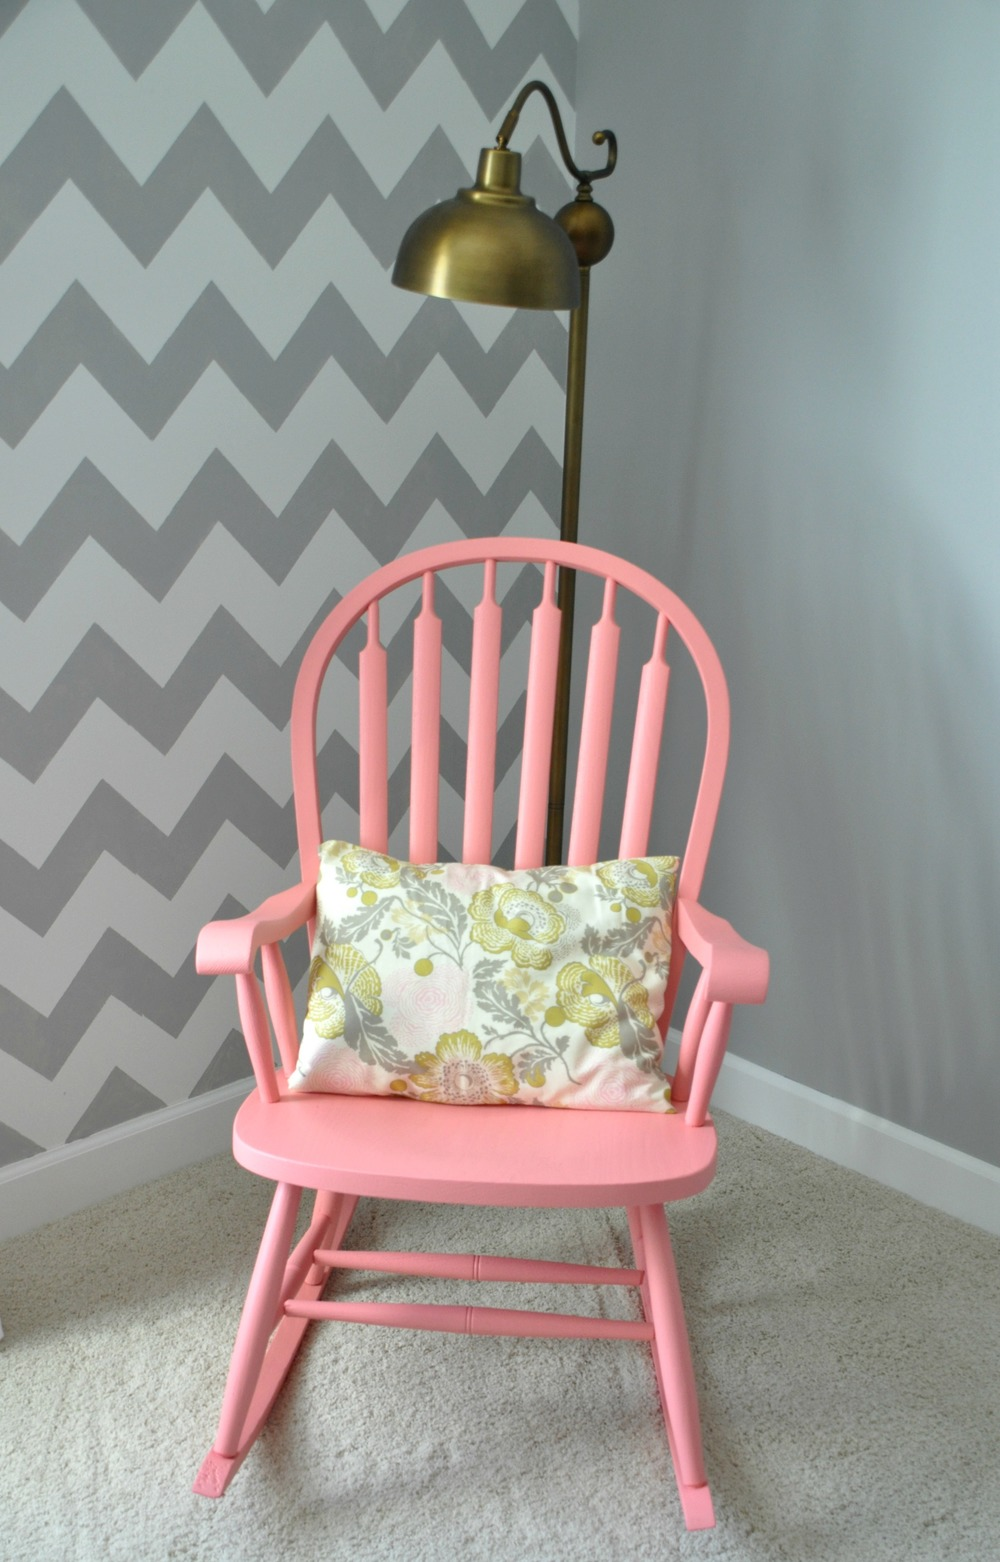 Painted Rocking Chair, Chevron Wall, Gold Lamp.jpg